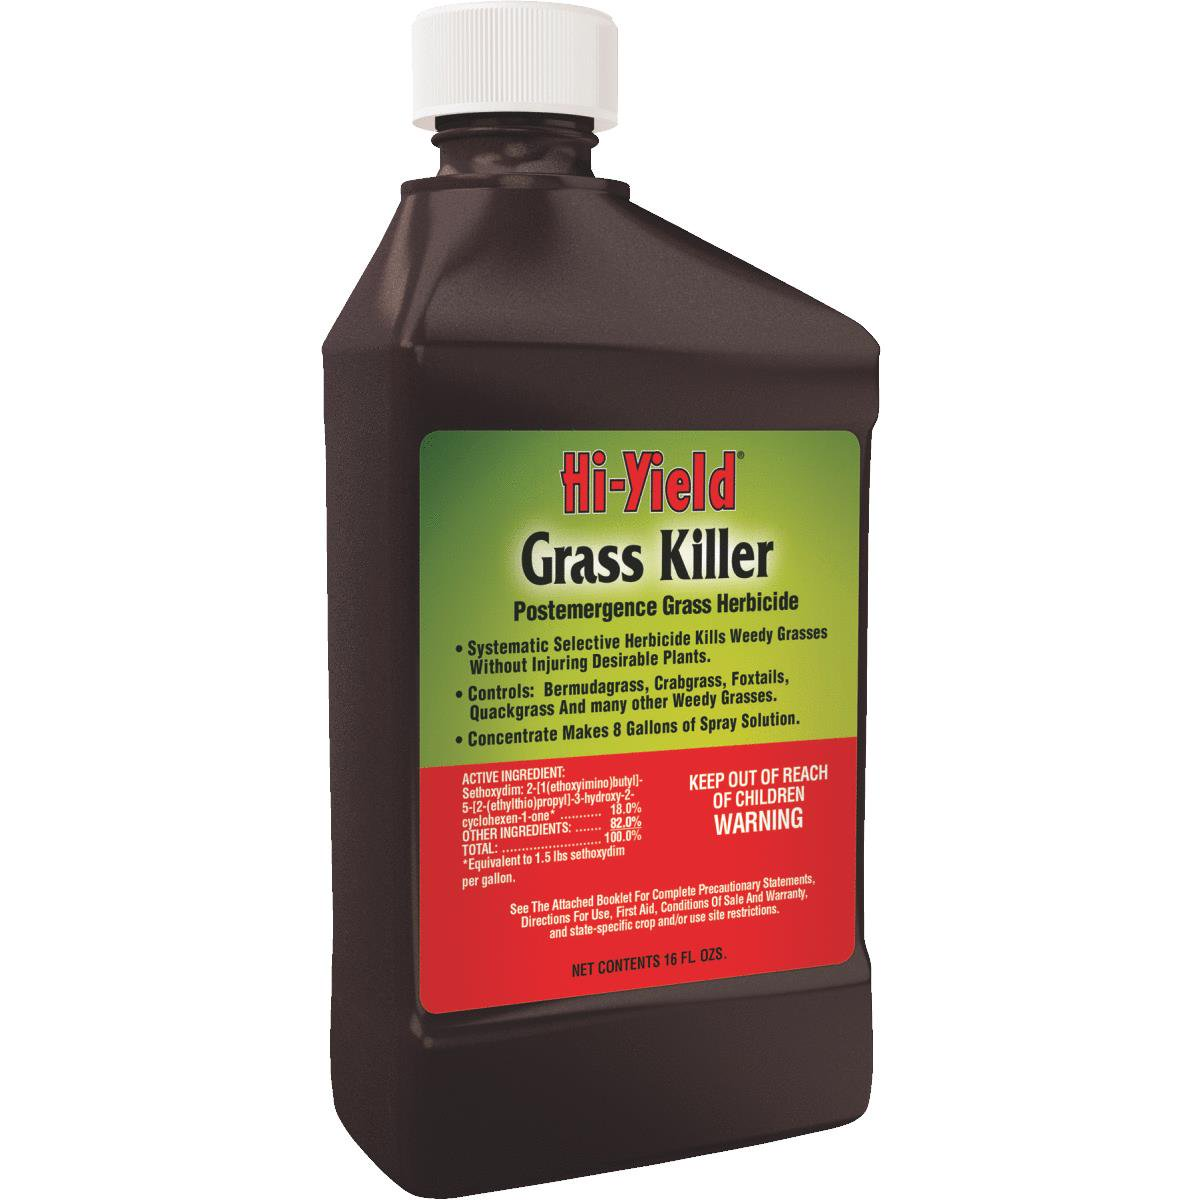 Ferti-lome Hi-Yield Postemergence Weed & Grass Killer